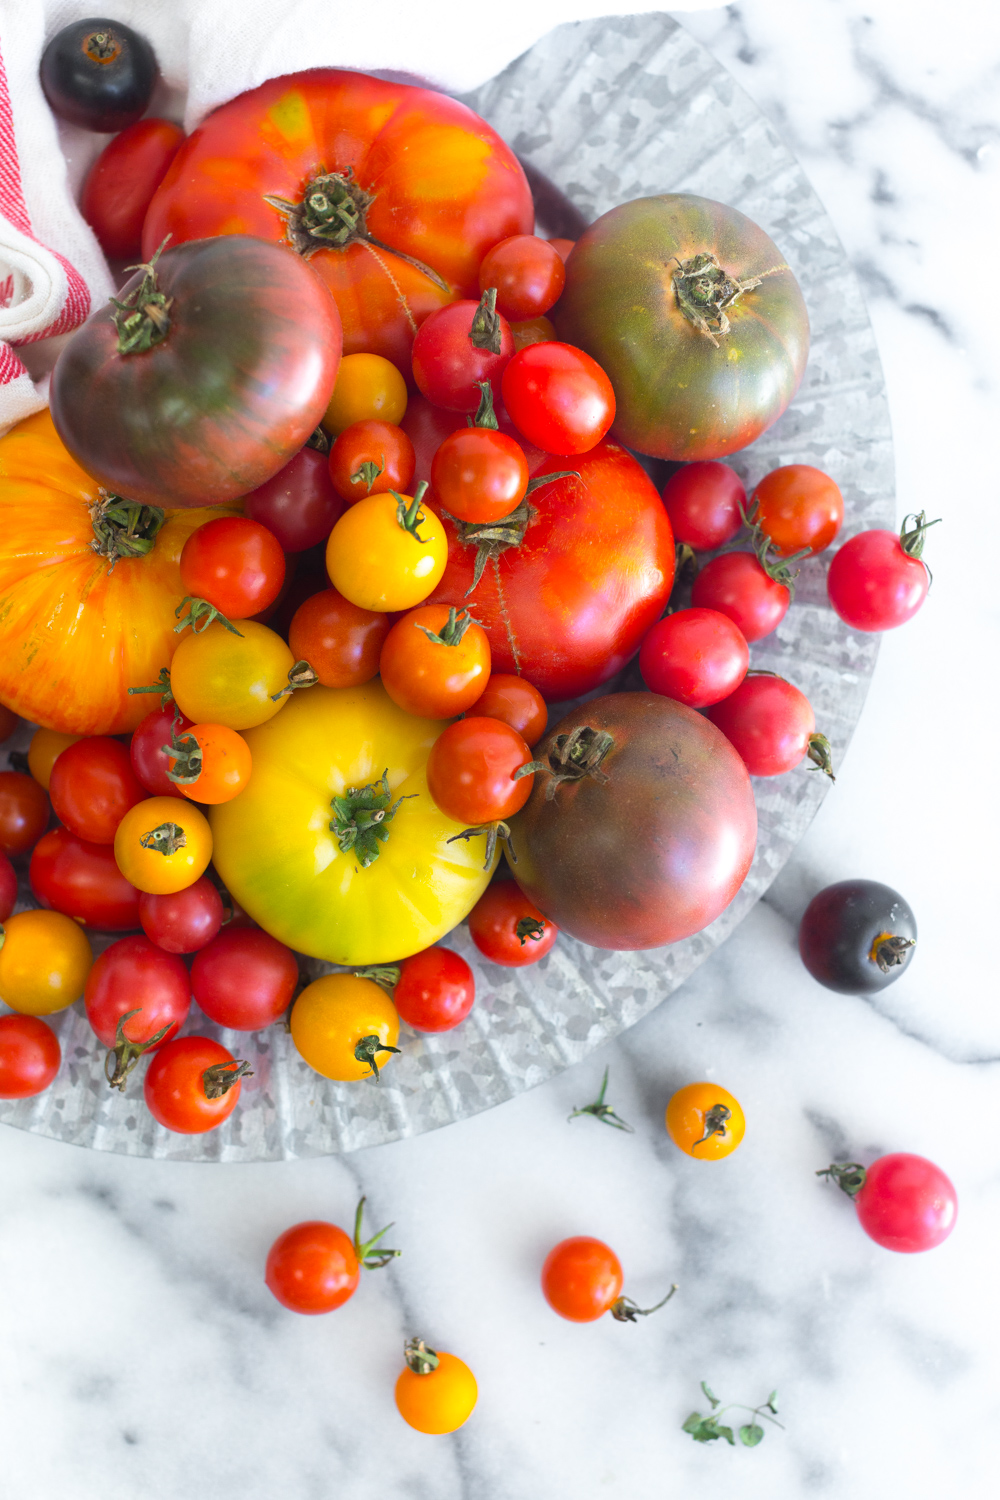 This glorious heap of heirloom tomatoes is all I want to eat.